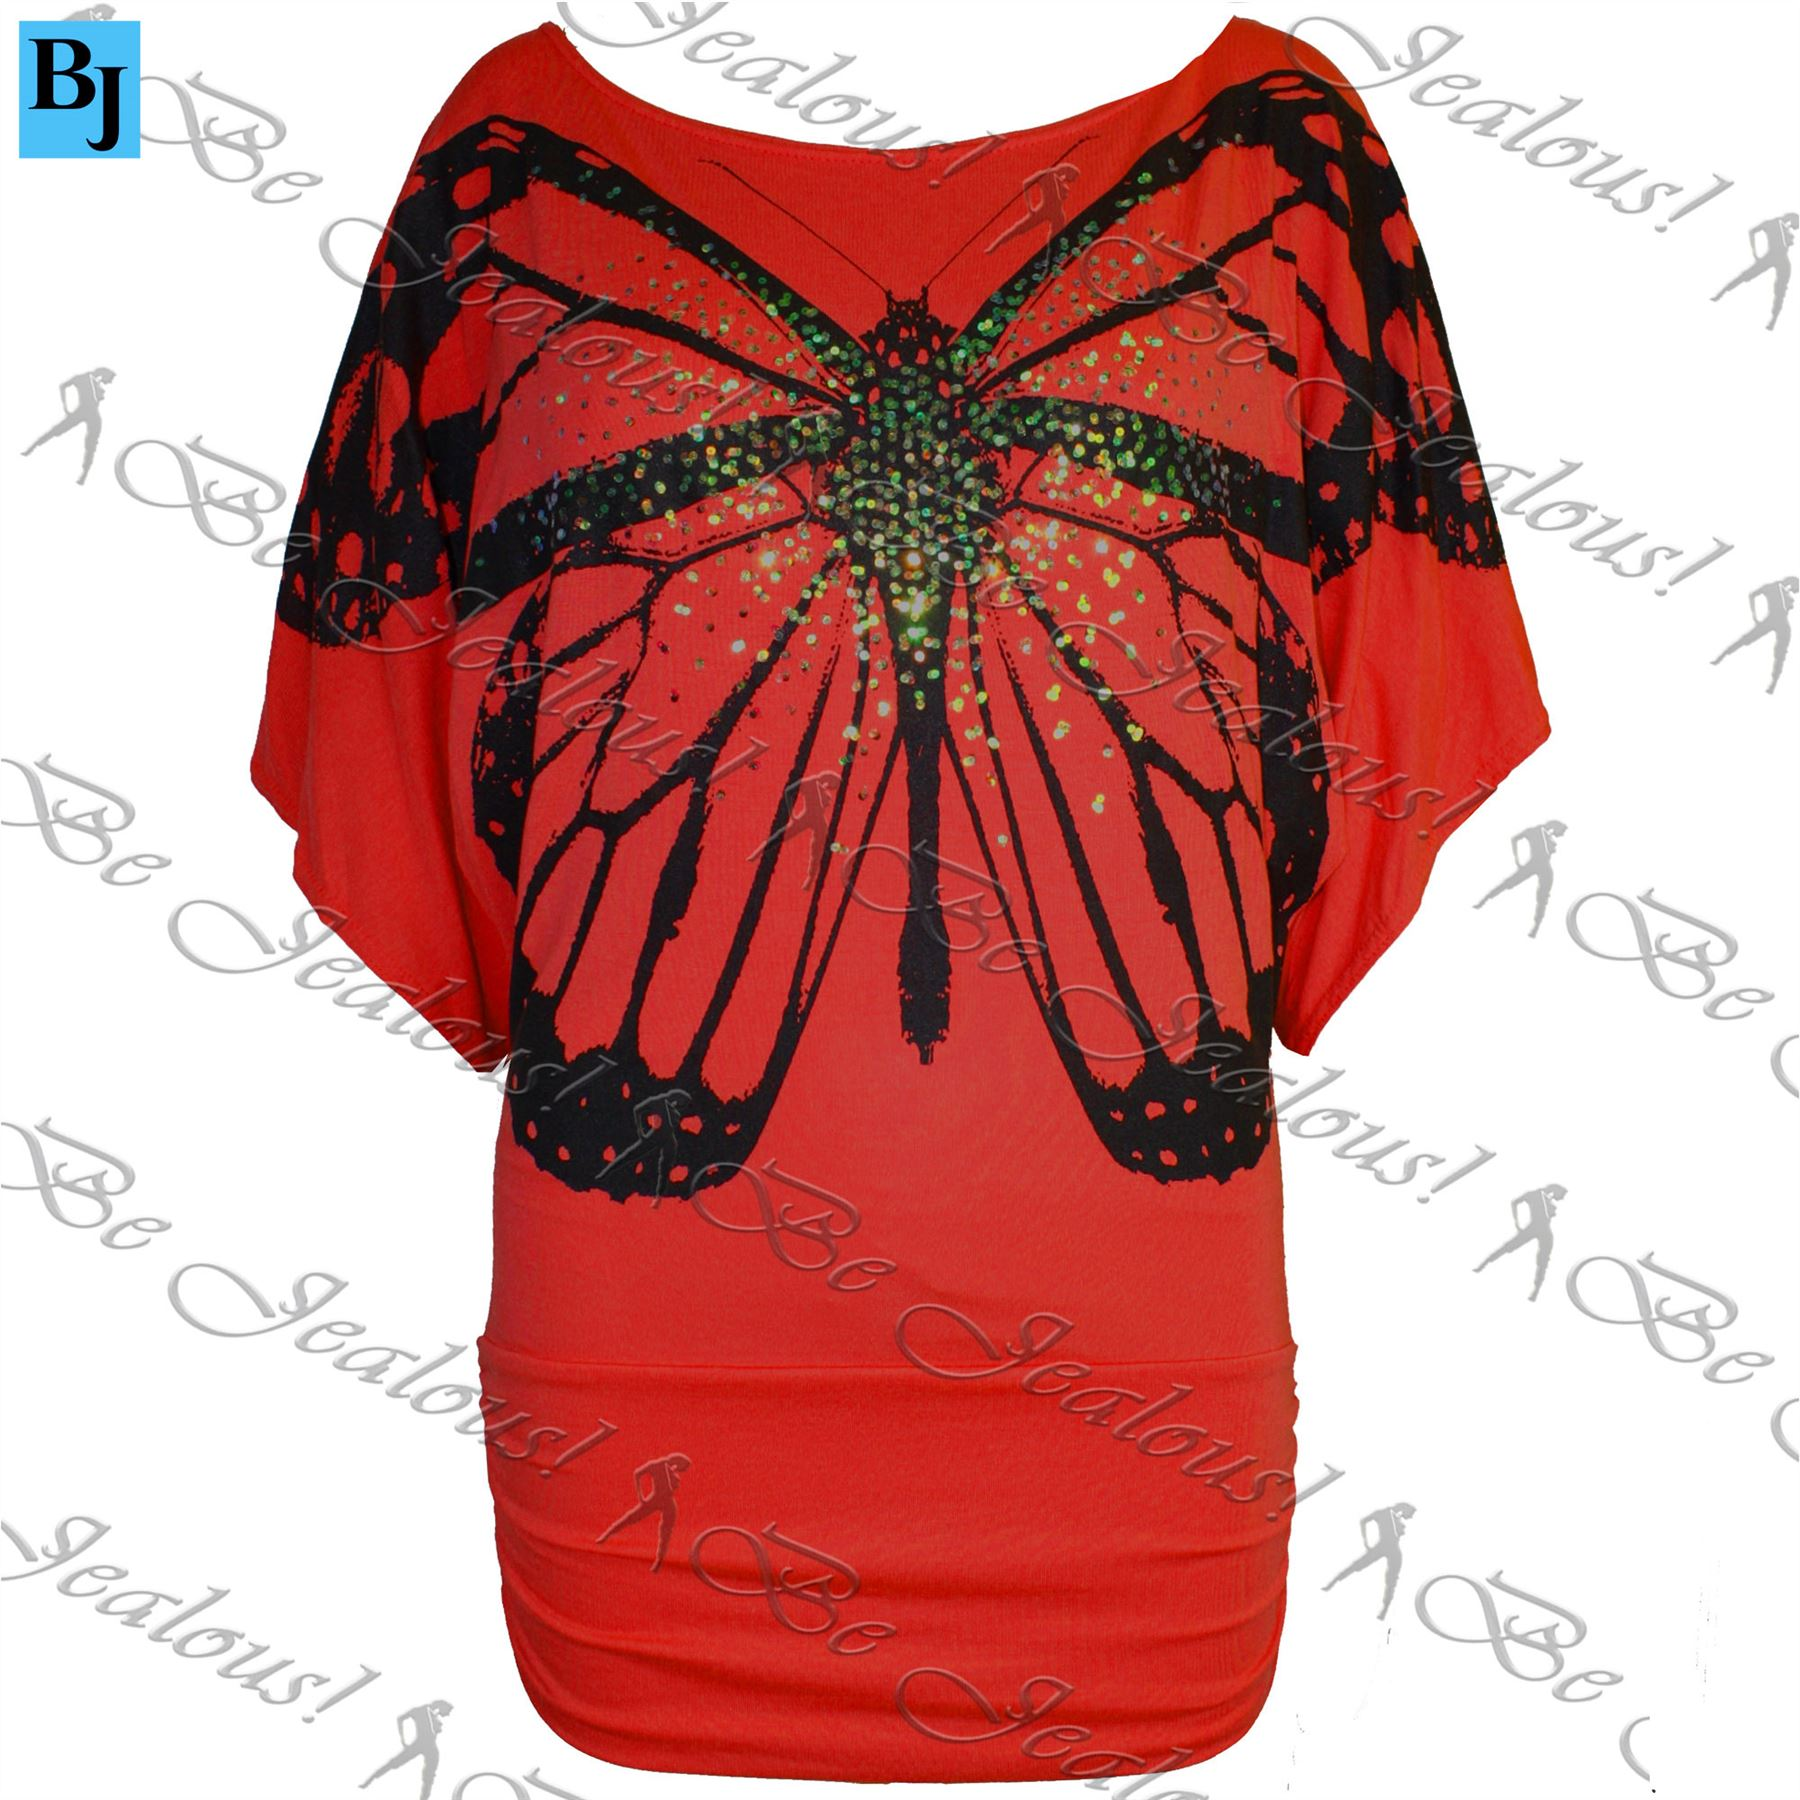 Womens-Ladies-Celeb-Print-Off-Shoulder-Sequin-Butterfly-Batwing-Side-Ruched-Top